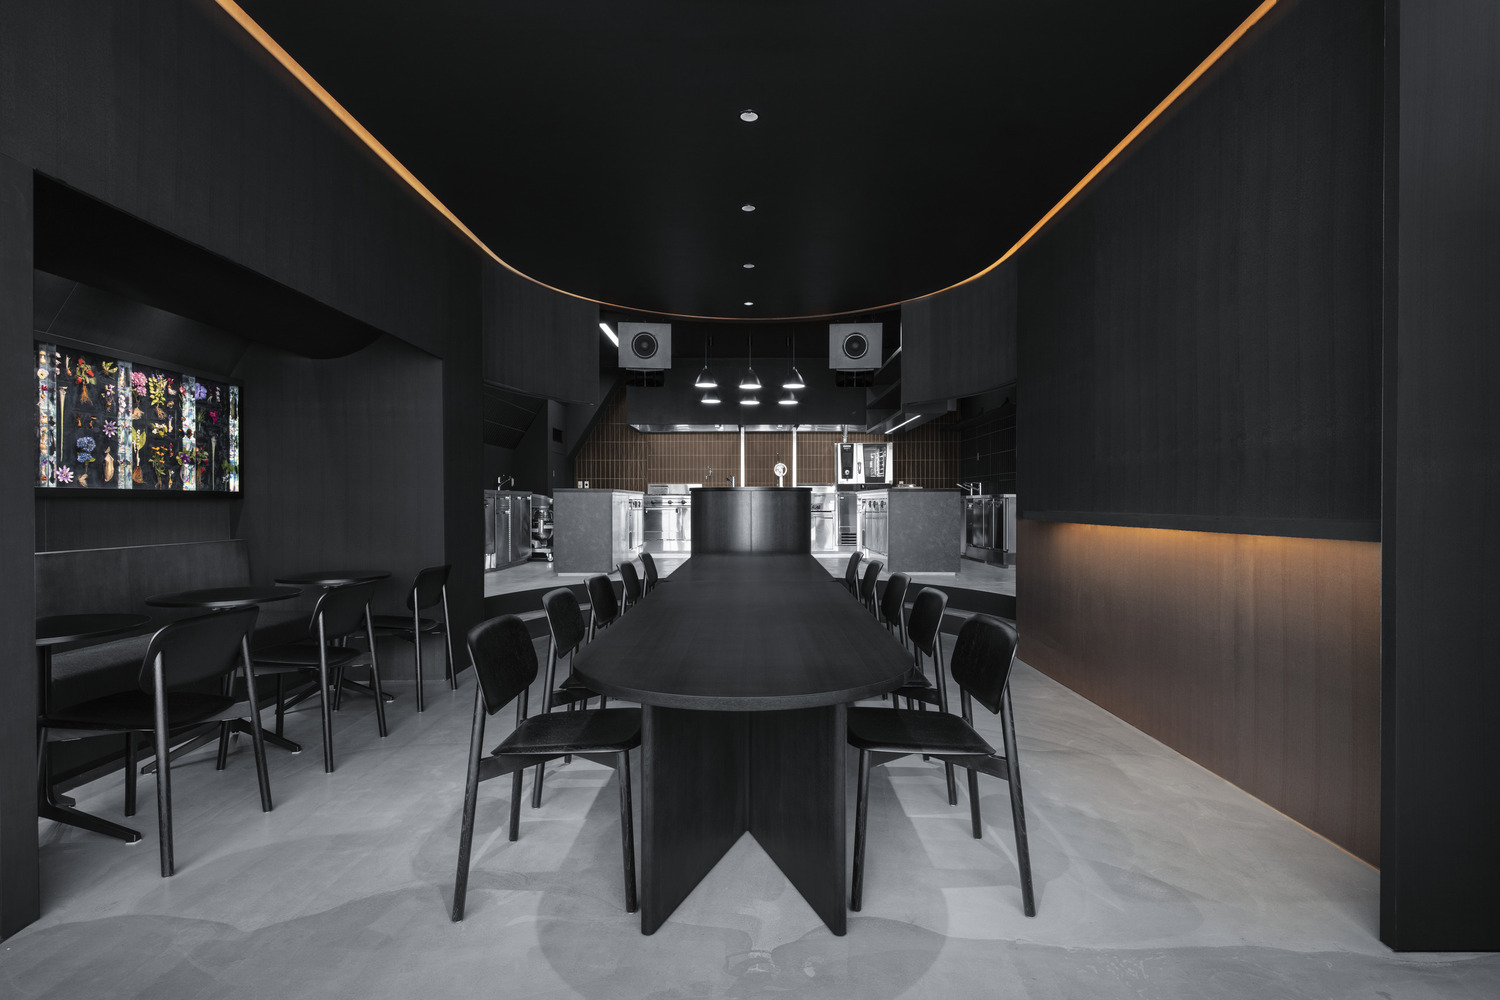 The corner stores of New York and the conbinis of Tokyo combine at this all-black cafe and restaurant – which is Snøhetta's first project in the Japanese capital.